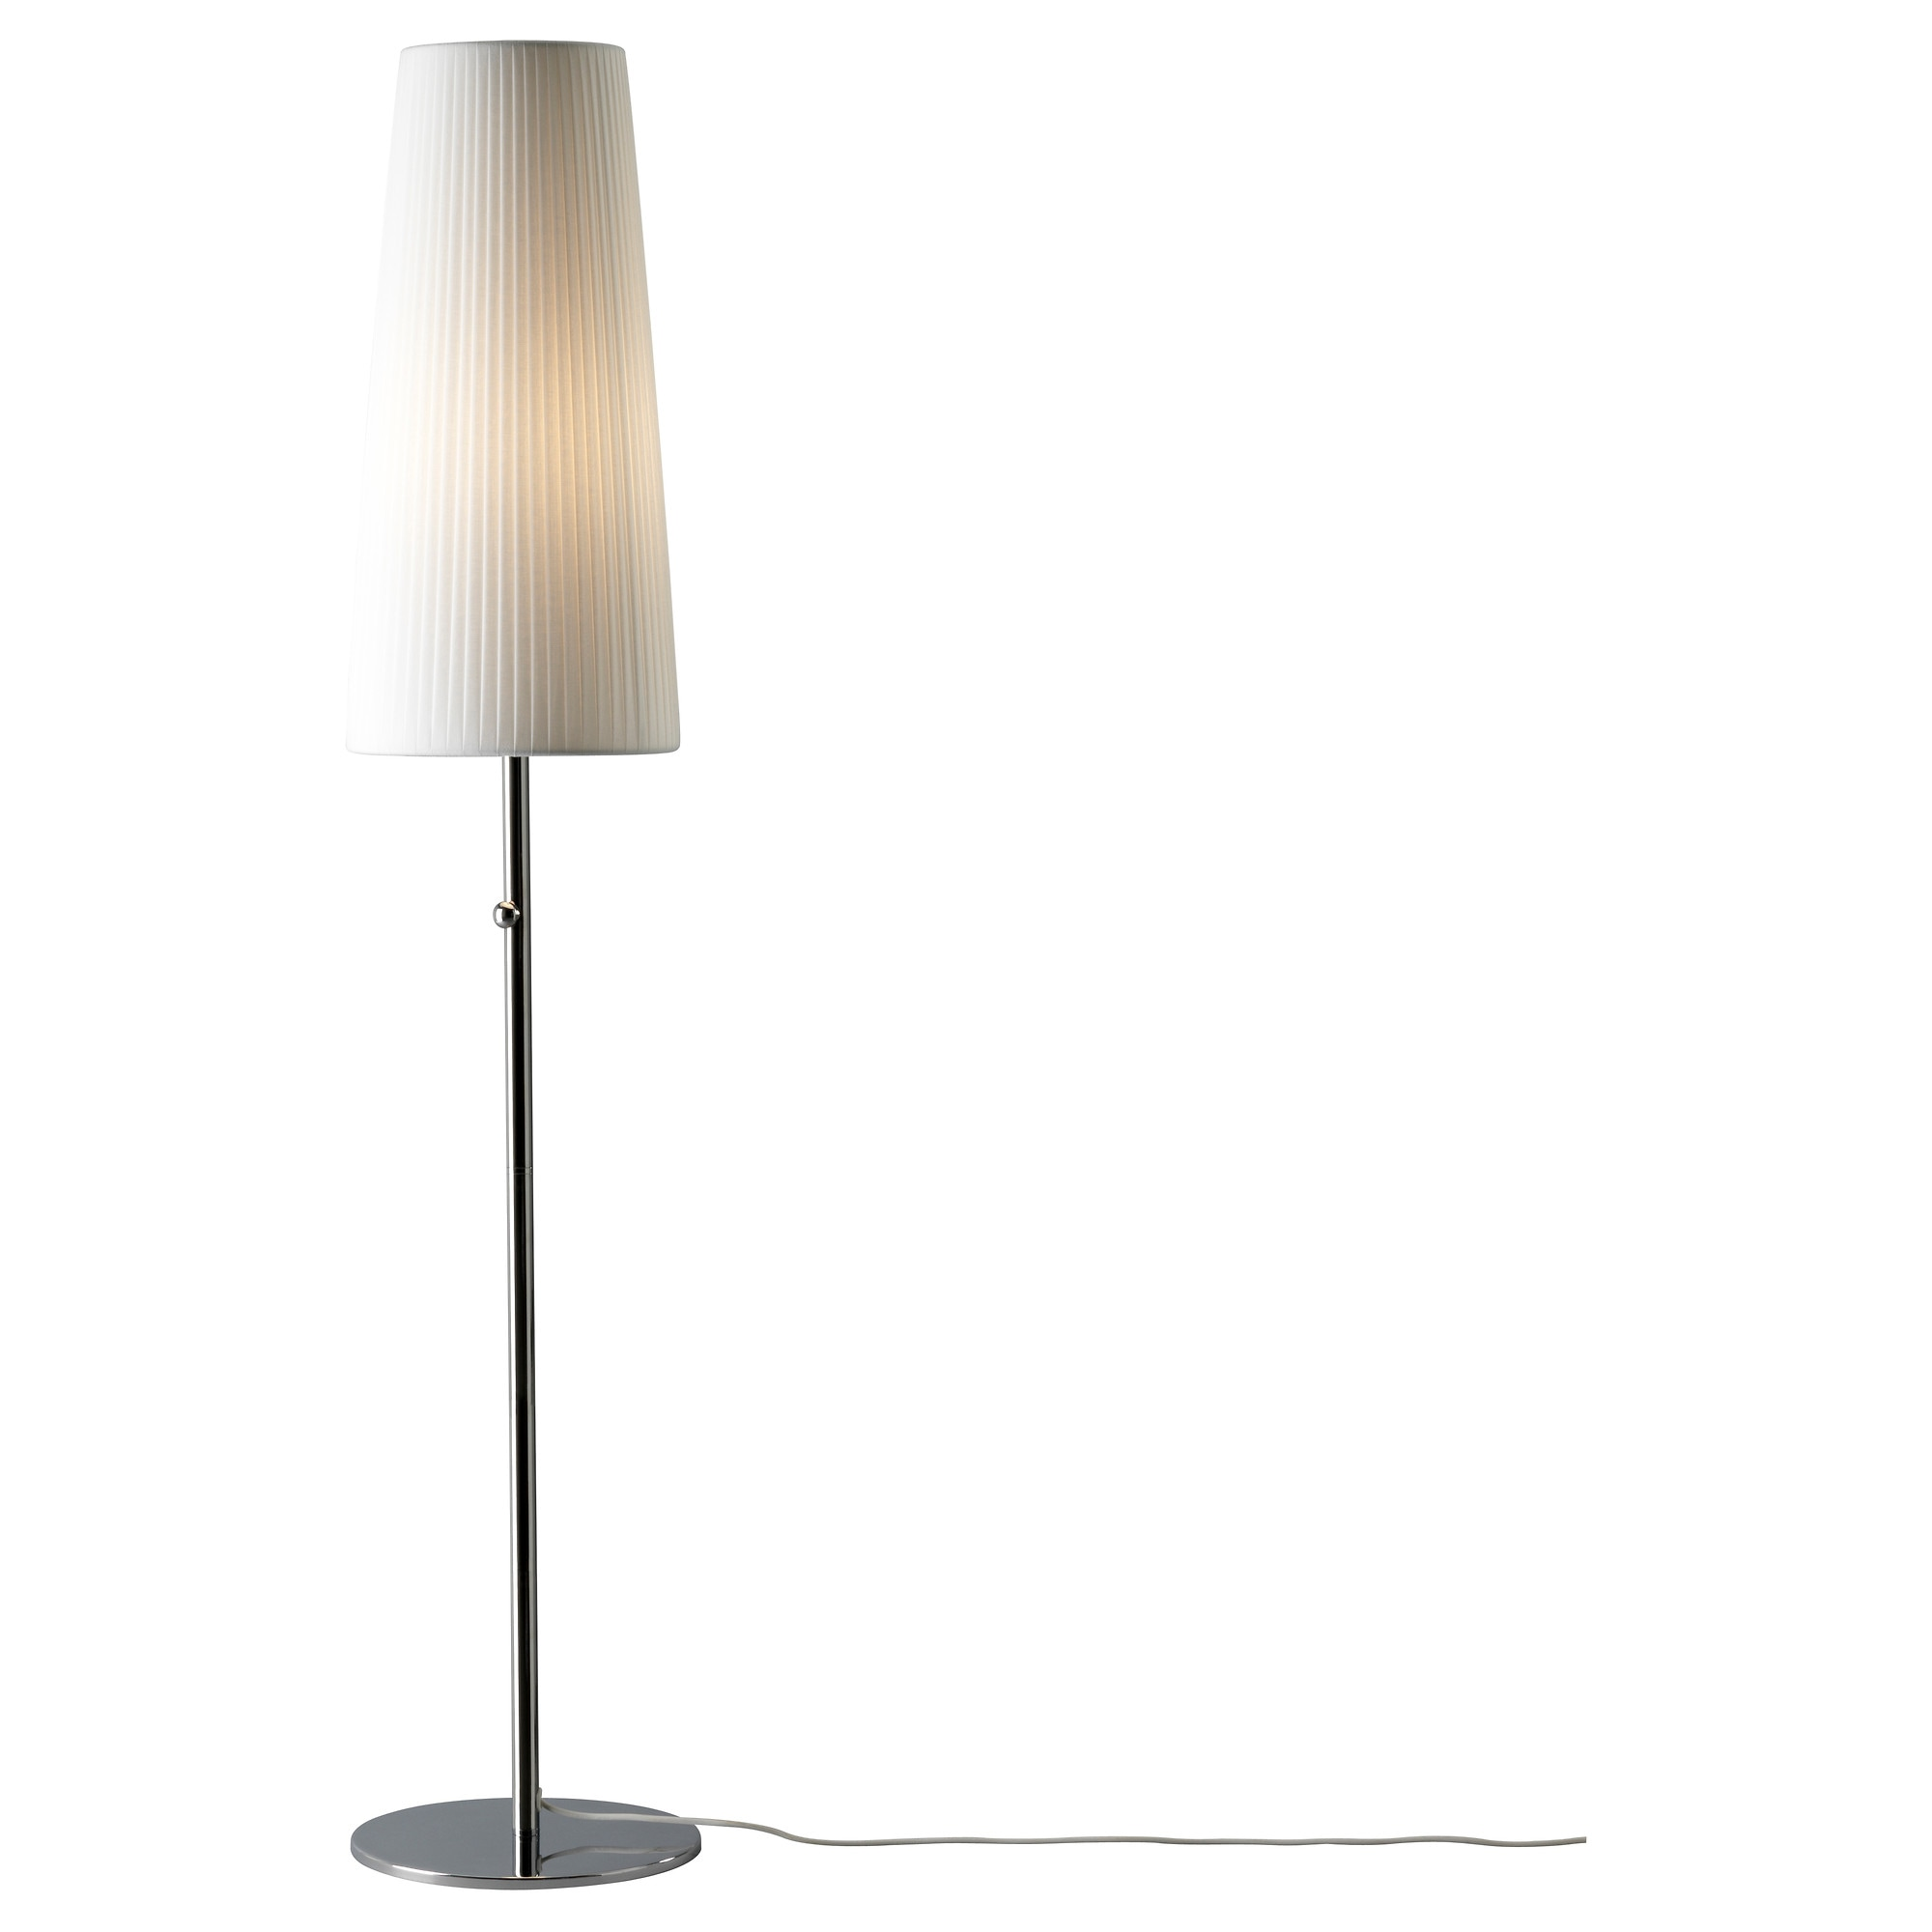 IKEA 365+ LUNTA floor lamp with LED bulb, chrome plated Height: 65